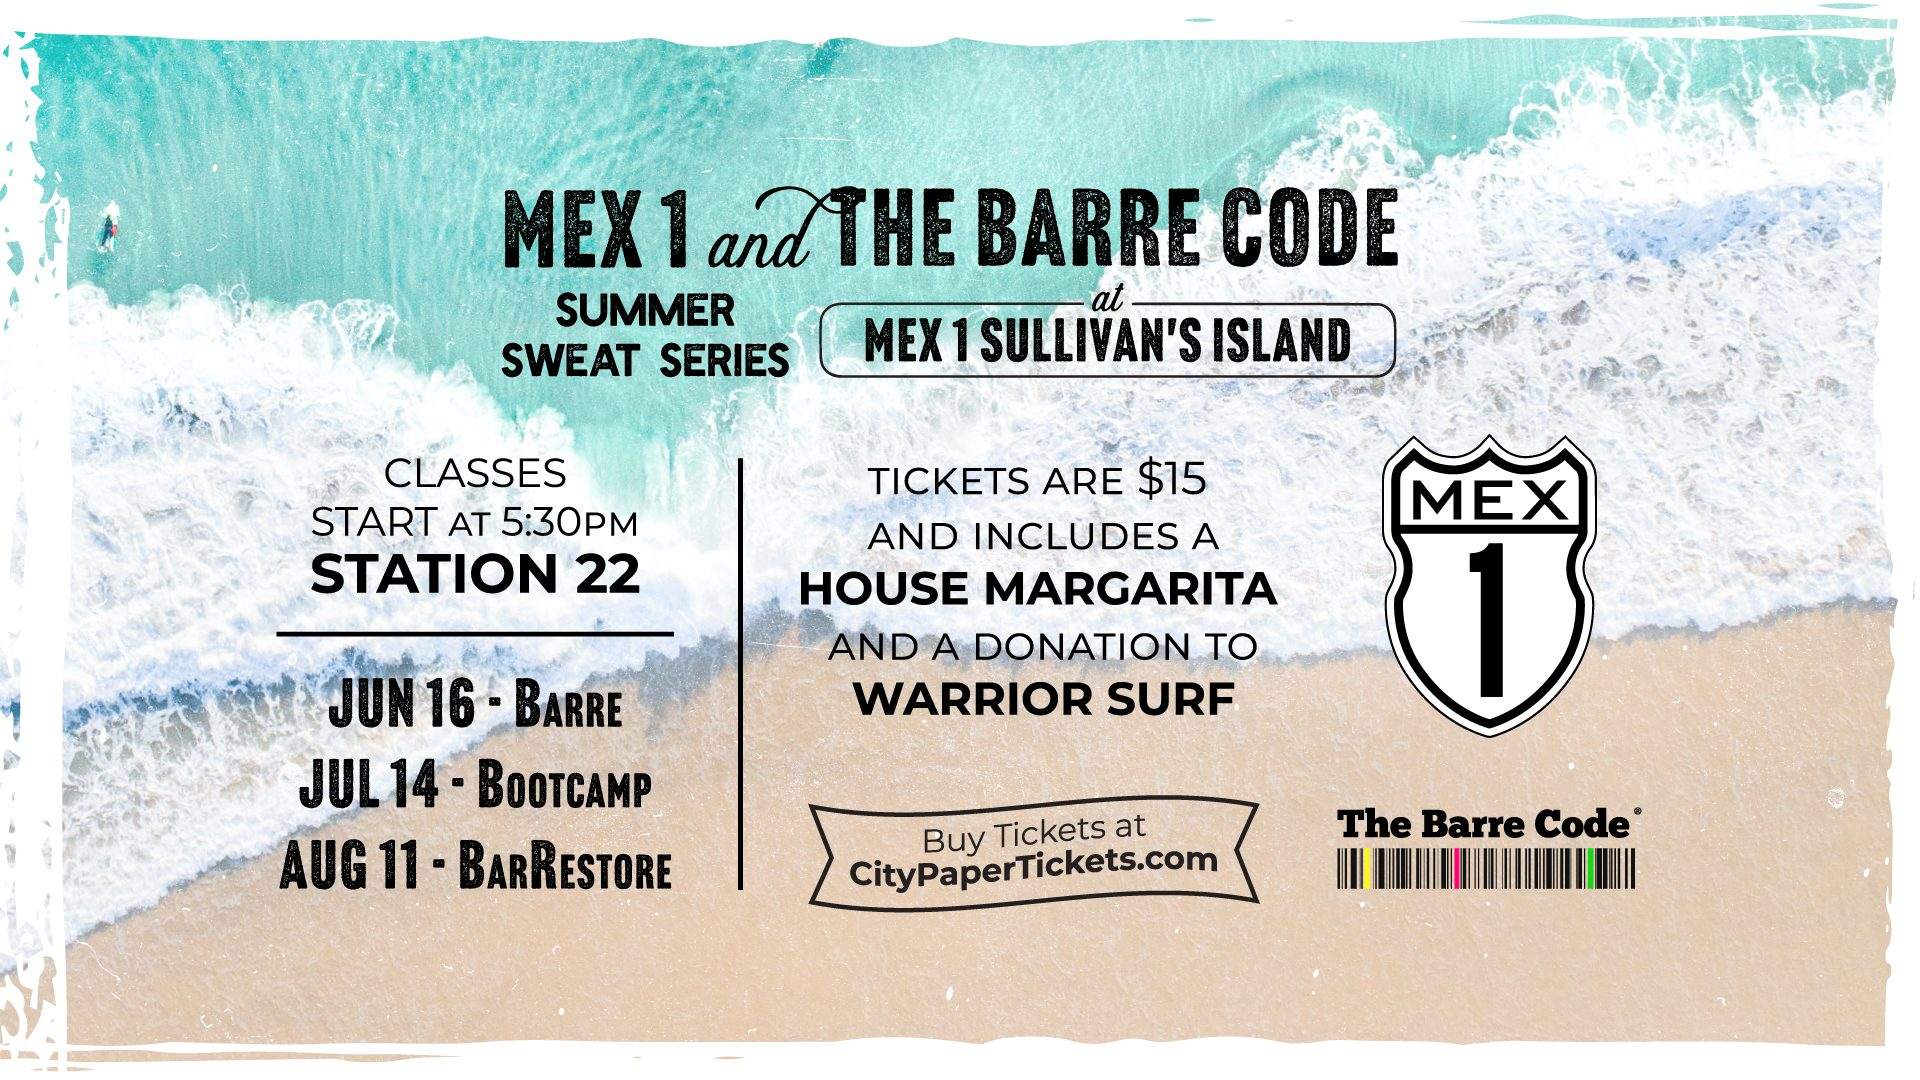 Summer Sweat Series with Mex 1 and The Barre Code